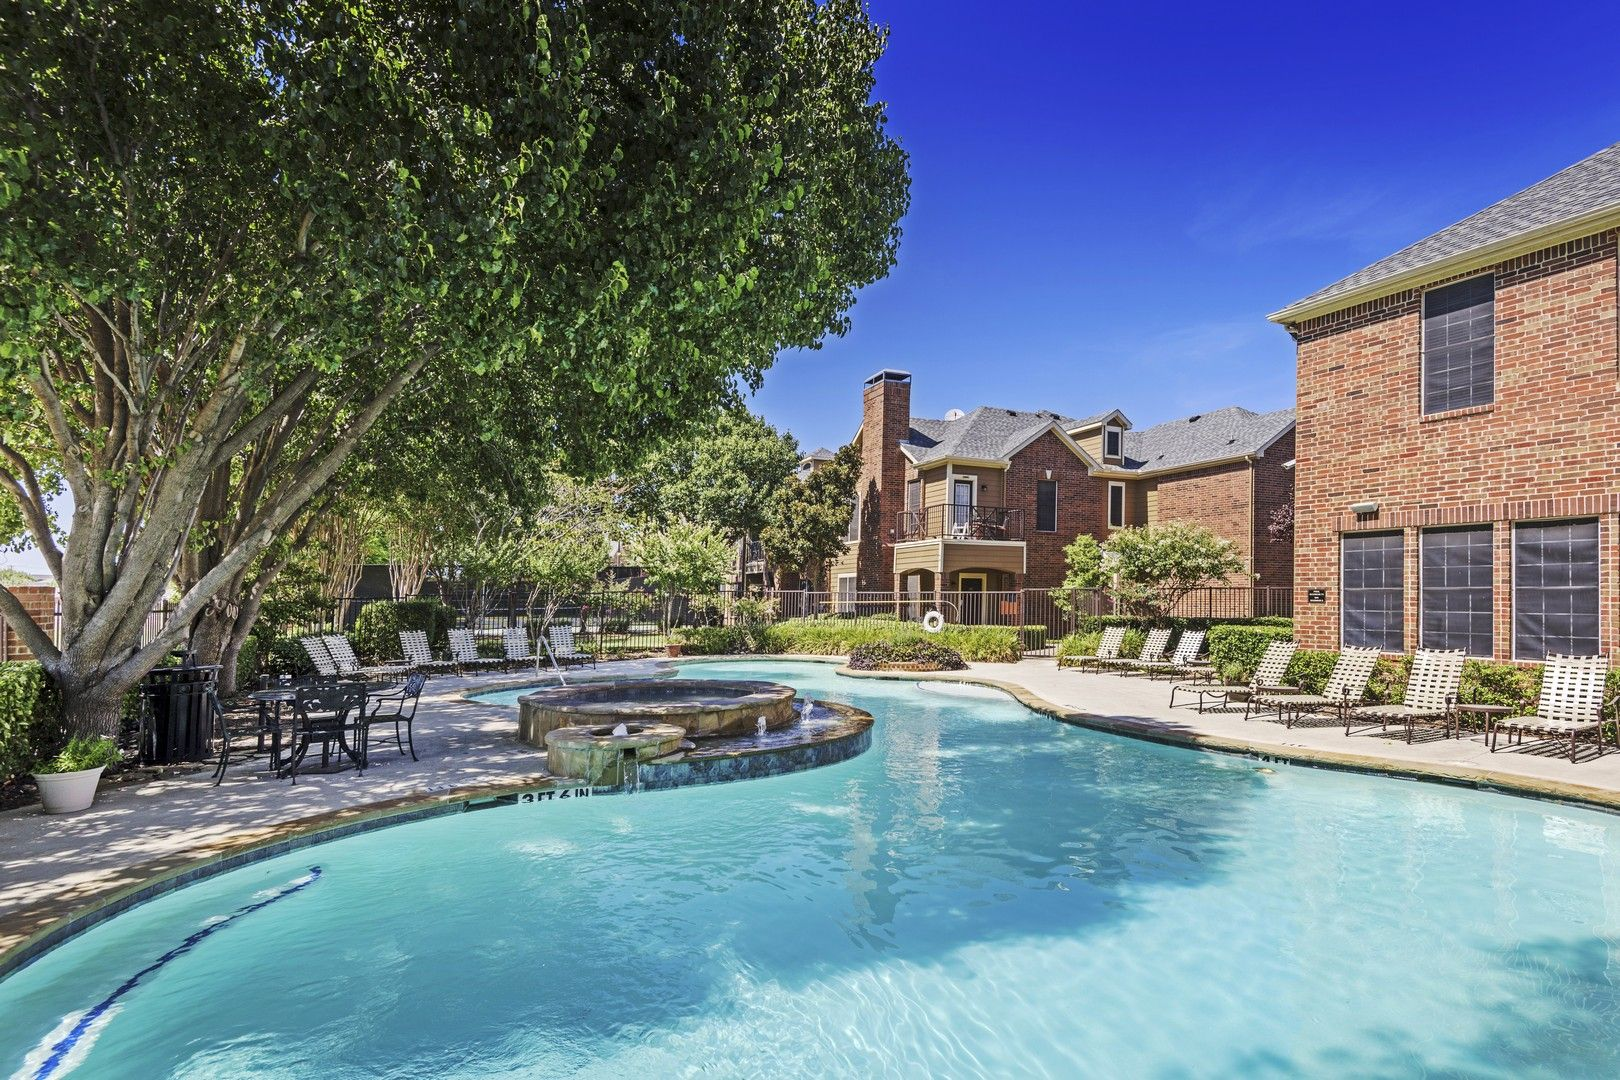 Home to the meadows at north richland hills